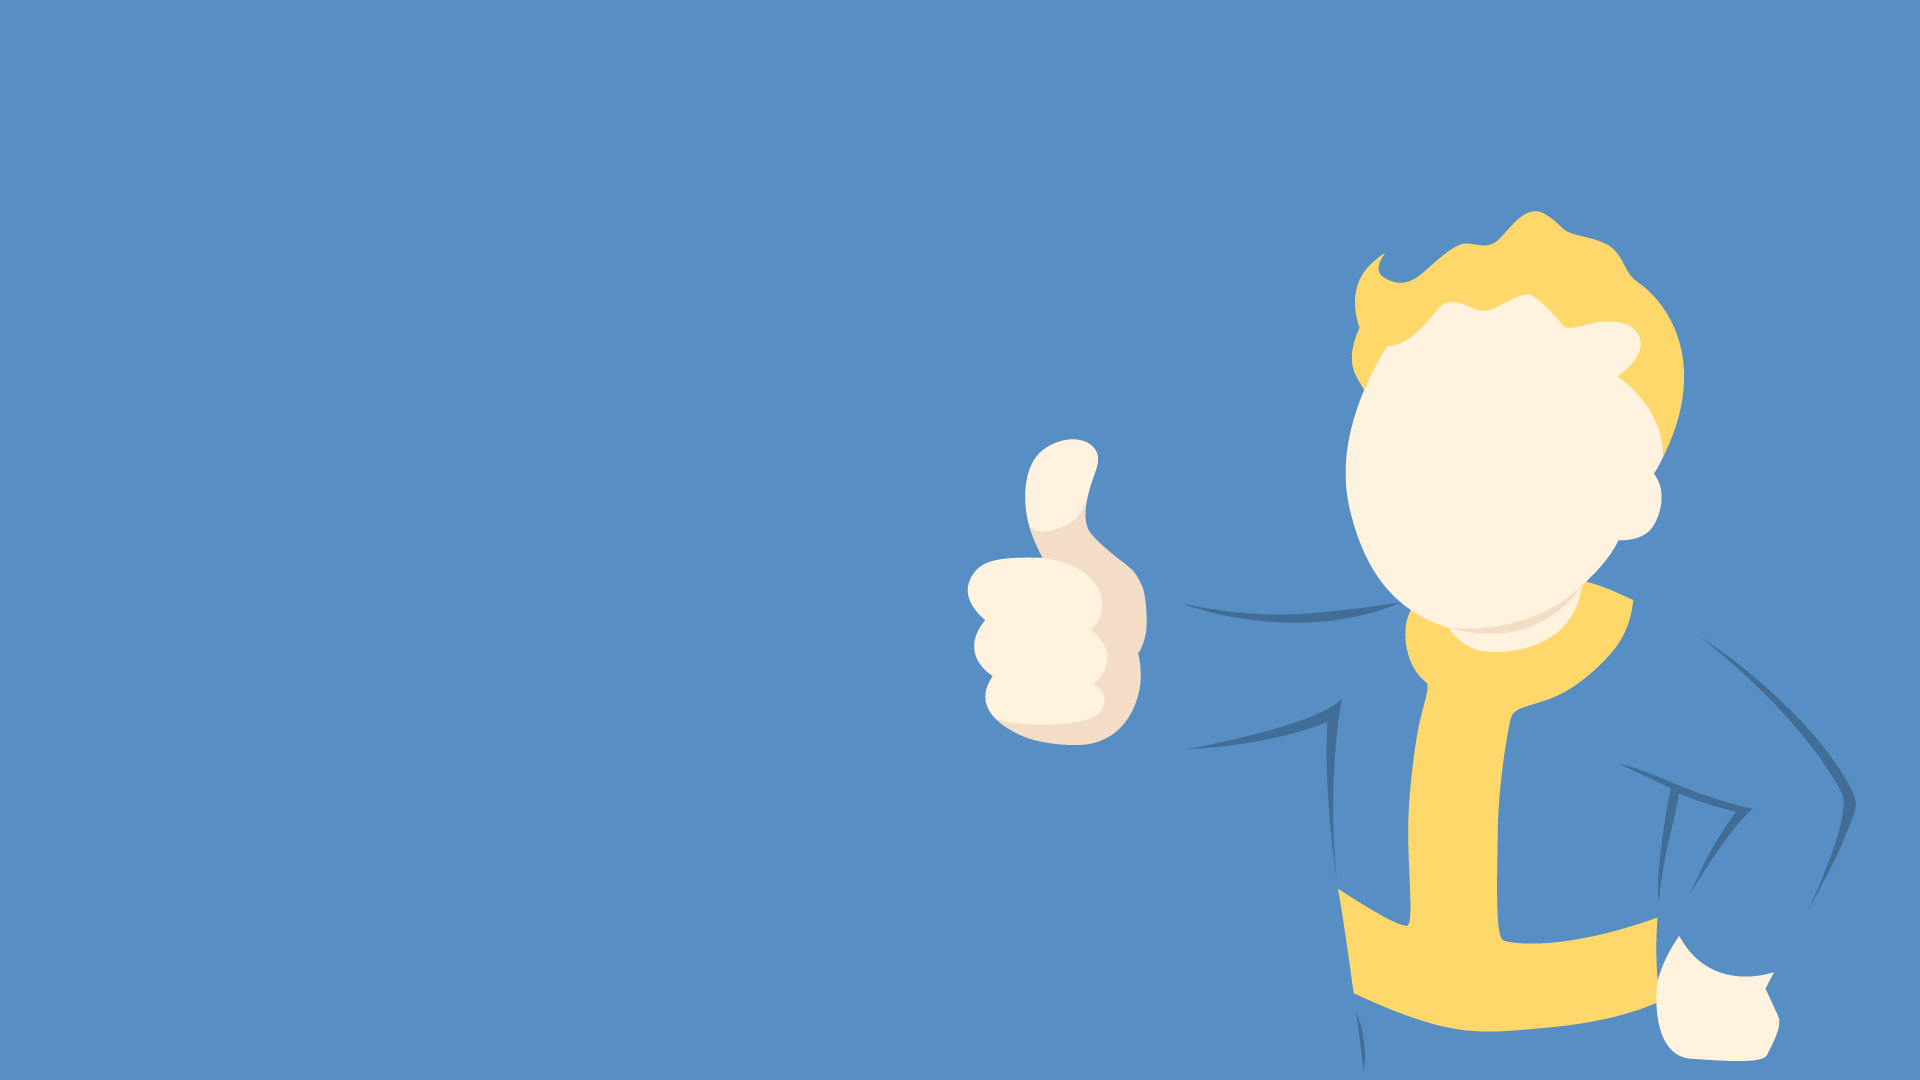 Best Vault Boy 1920x1080 Wallpaper by Luella Blunk